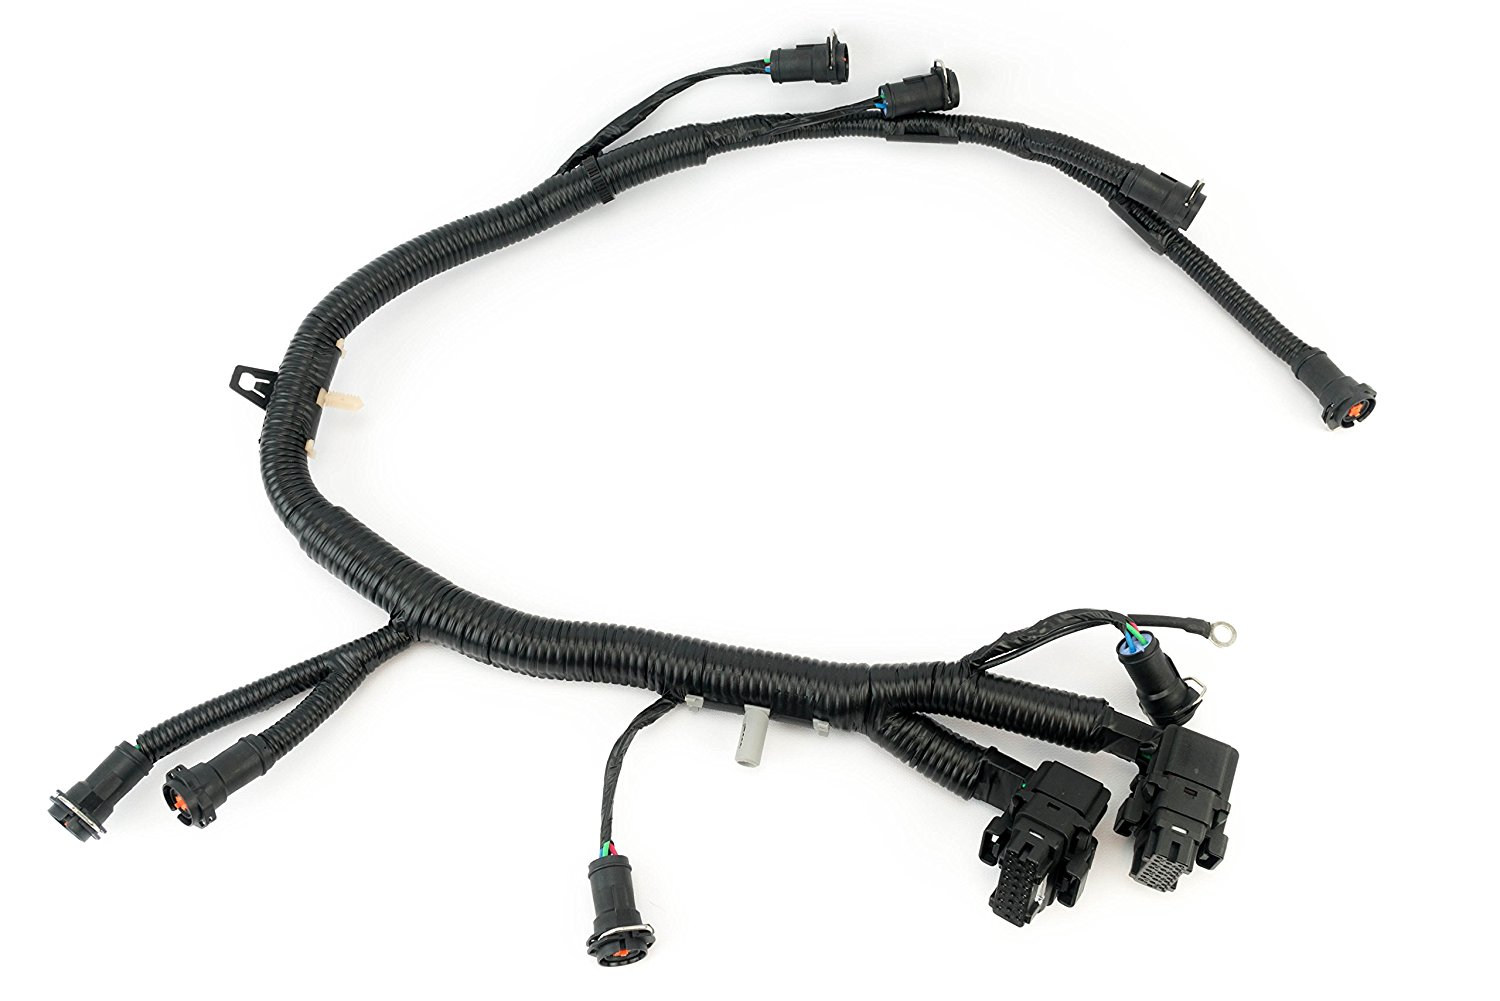 FUEL INJECTOR CONTROL MODULE (FICM) HARNESS – This wire harness connects  the fuel injectors on your 6.0 Powerstroke diesel engine to the FICM module.